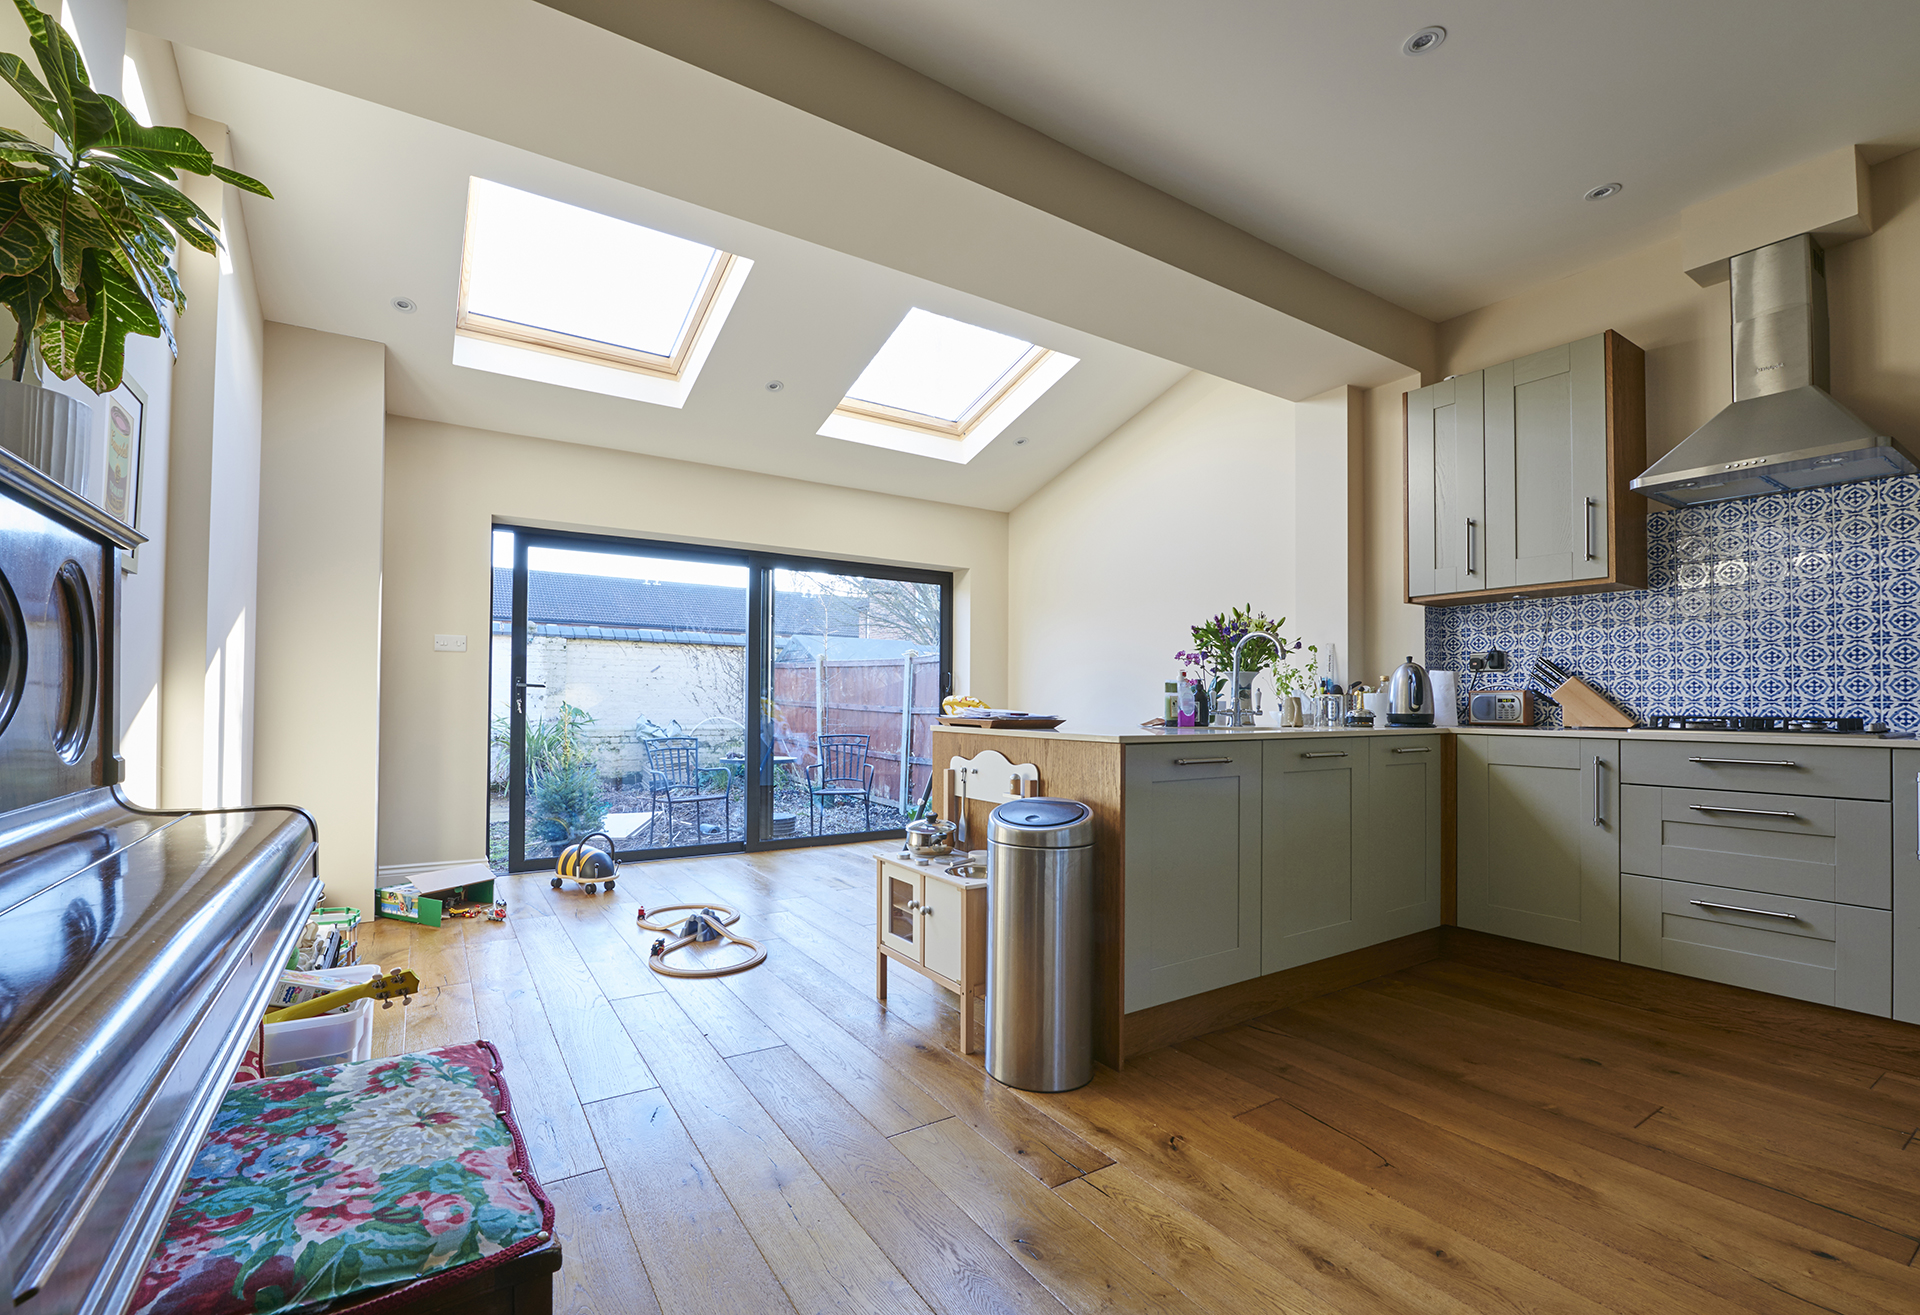 Kitchen extension with Bi-fold doors